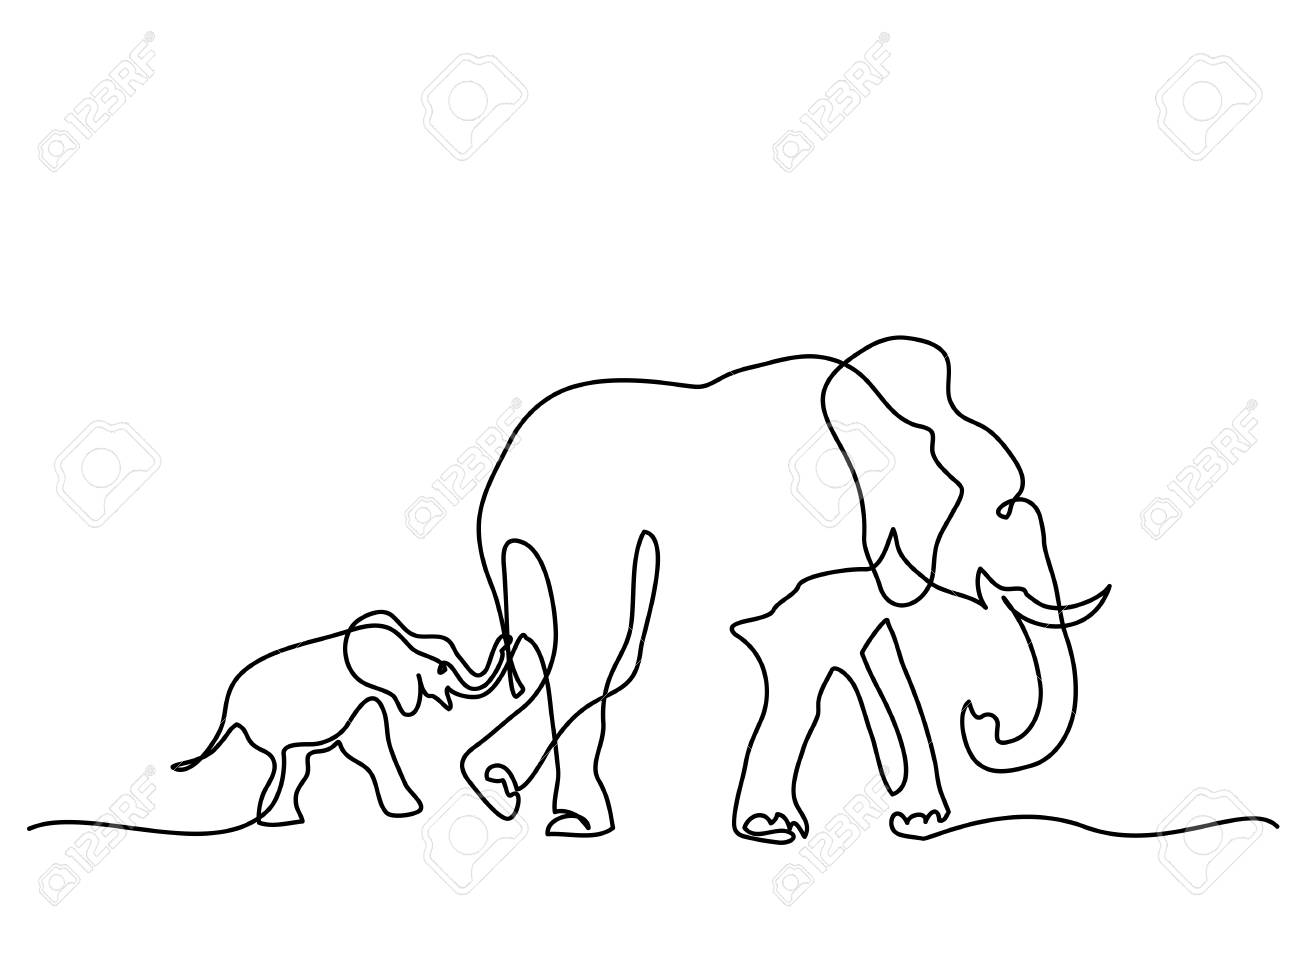 Continuous Line Drawing Elephant Wiring Diagrams Experimenting With Feedback And Crossover Distortion Circuitshome Mom Baby Walking Symbol Rh 123rf Com Animal Picasso